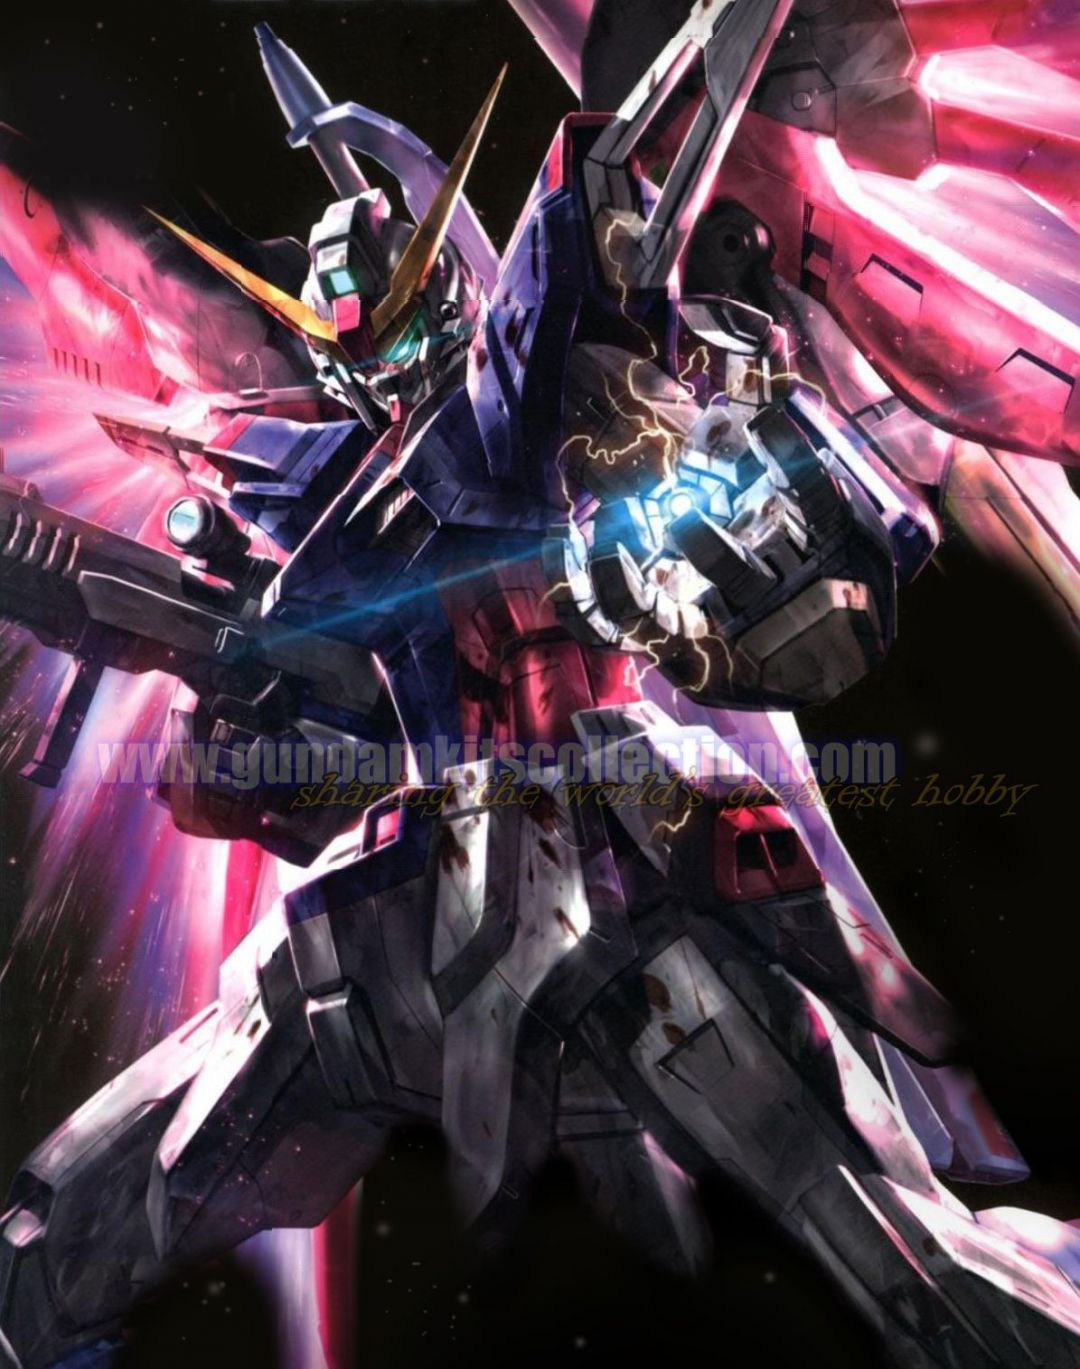 Android, Iphone, Desktop Hd Backgrounds / Wallpapers - Gundam Hd Wallpaper For Android - HD Wallpaper